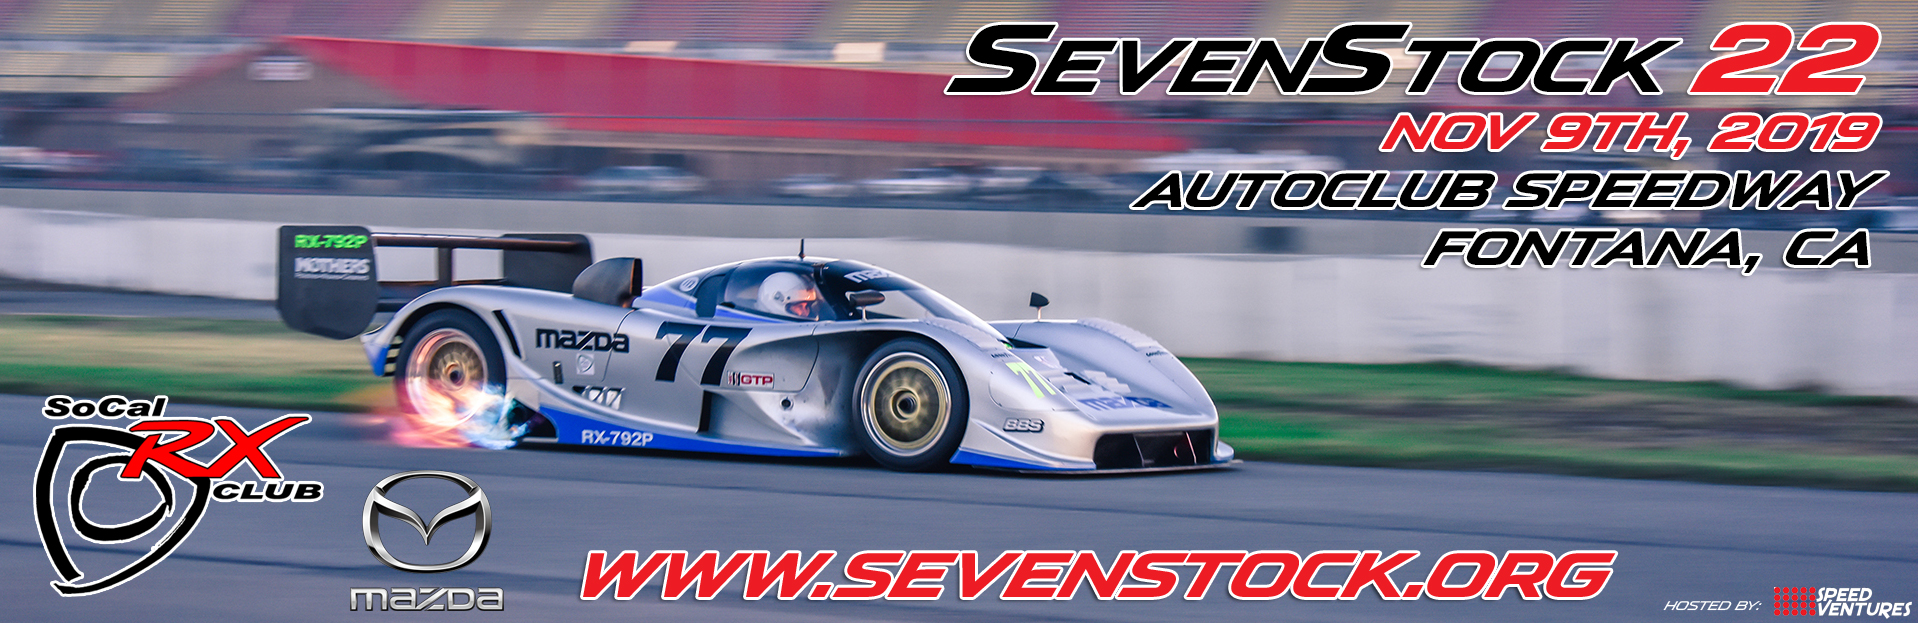 SevenStock 22 – Saturday, November 9, 2019 Location: Auto Club